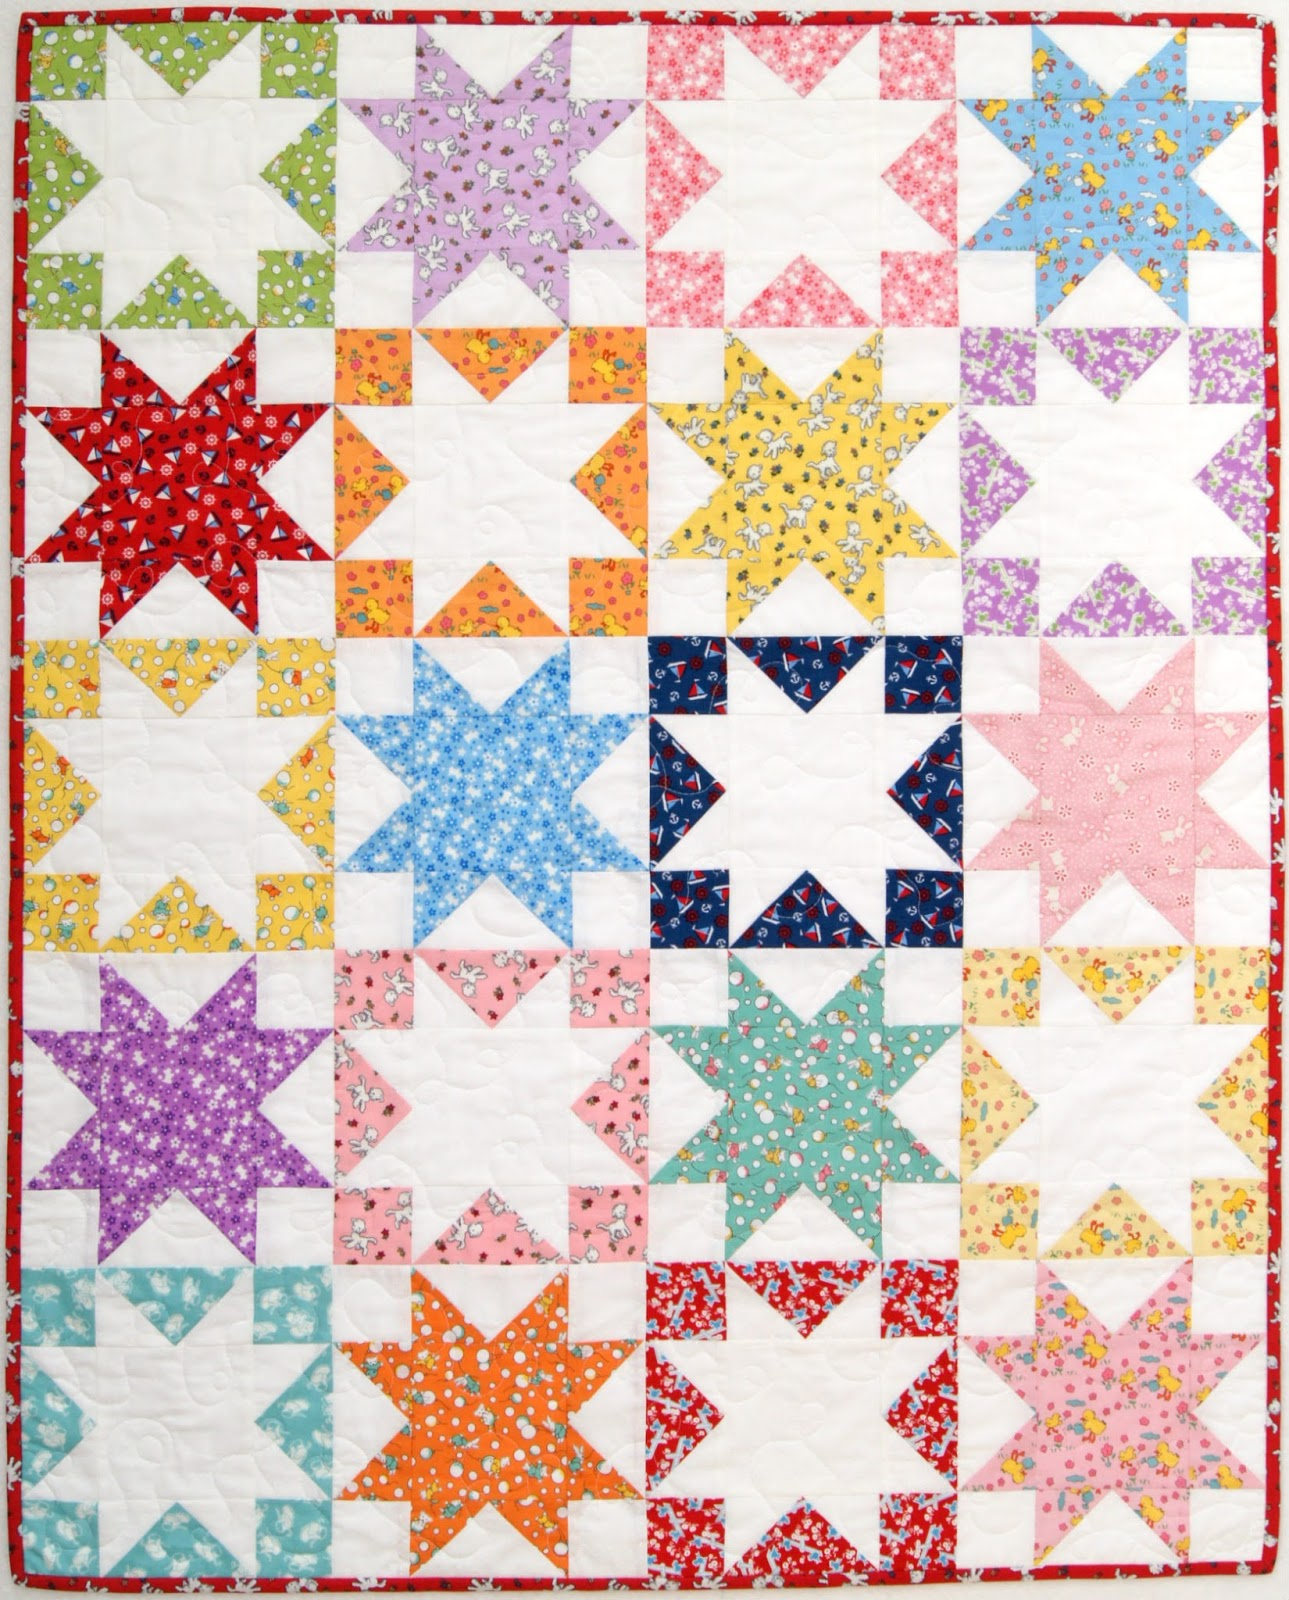 Star Quilts on Pinterest | Quilts, Stars and Quilting